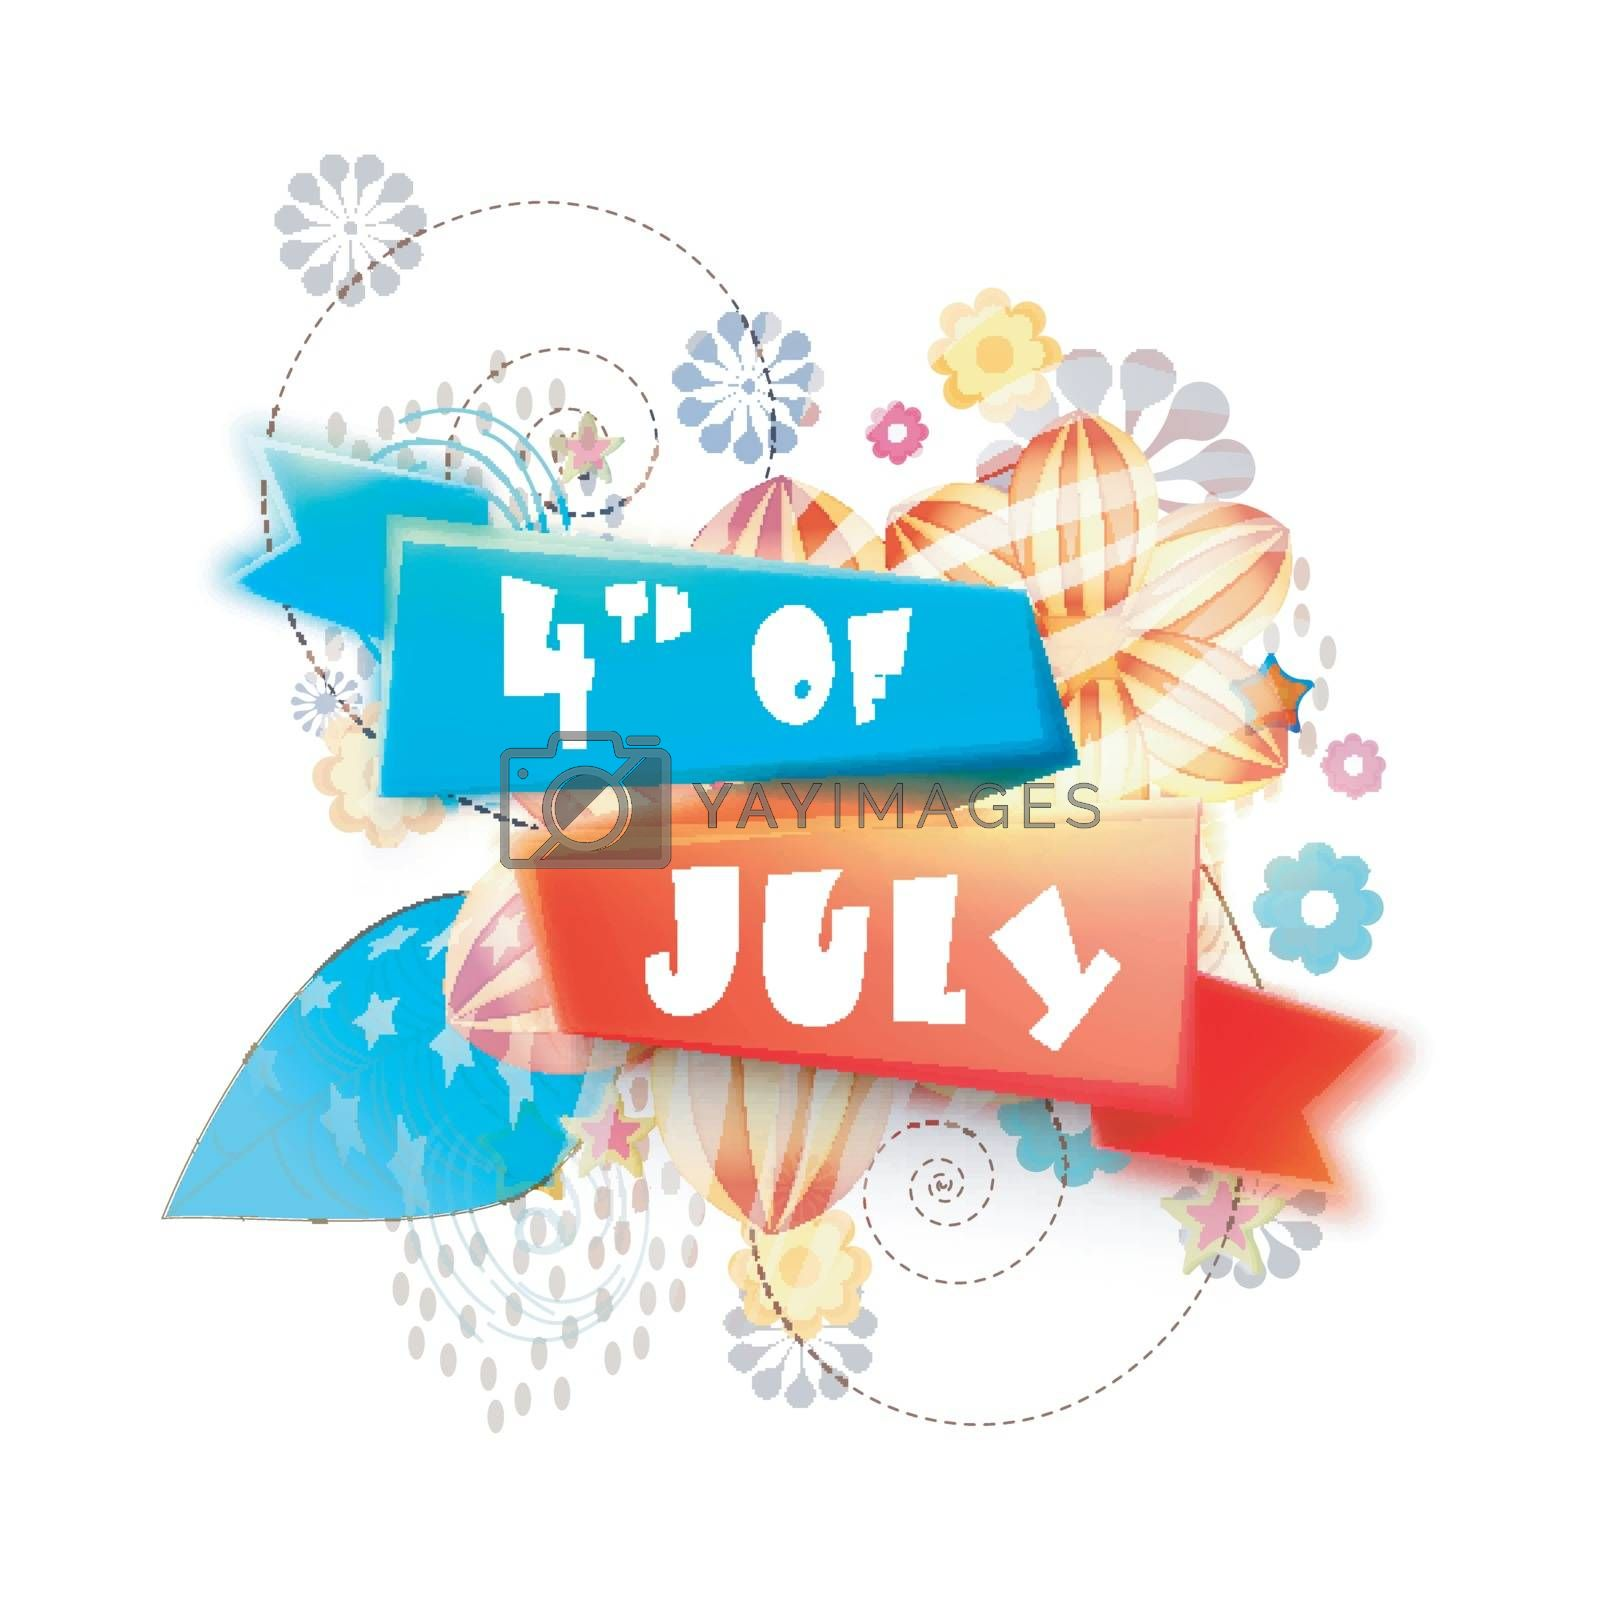 4th of July Ribbon design on abstract floral elements background for American Independence Day celebration.